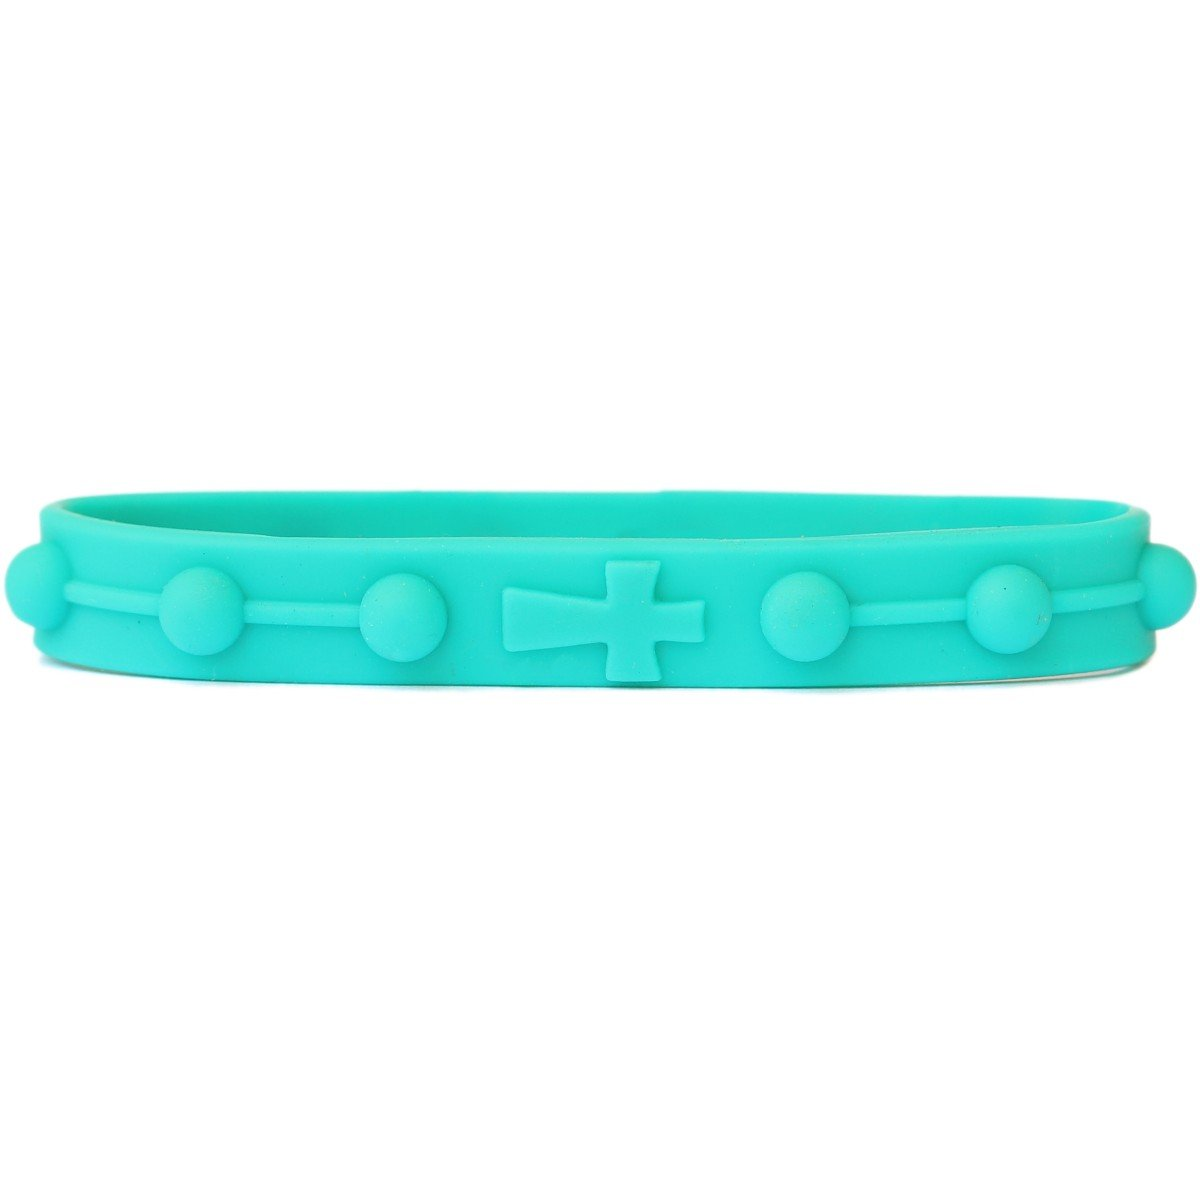 SayitBands 1 Rosary Wristband Bracelet in Teal (8 inch Size for Teen/Adult)